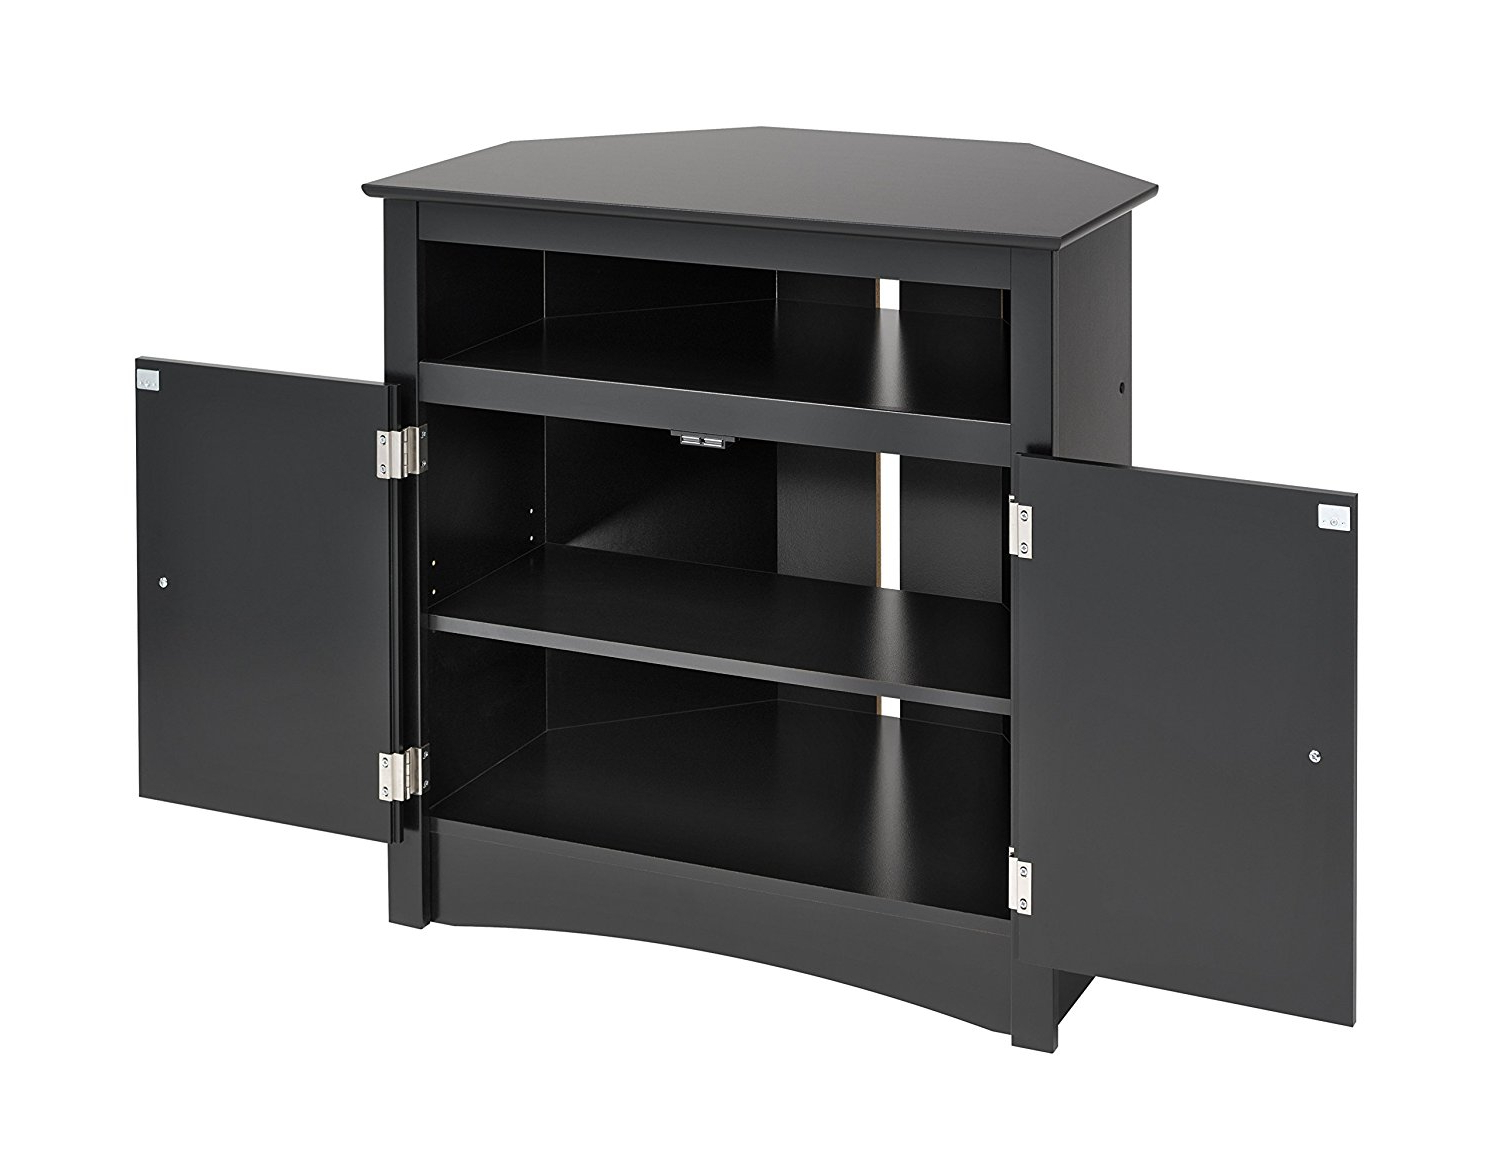 2018 Oak Corner Tv Stand For 50 Inch Walmart Cabinet 60 Hooker Black With Black Corner Tv Cabinets (View 1 of 20)